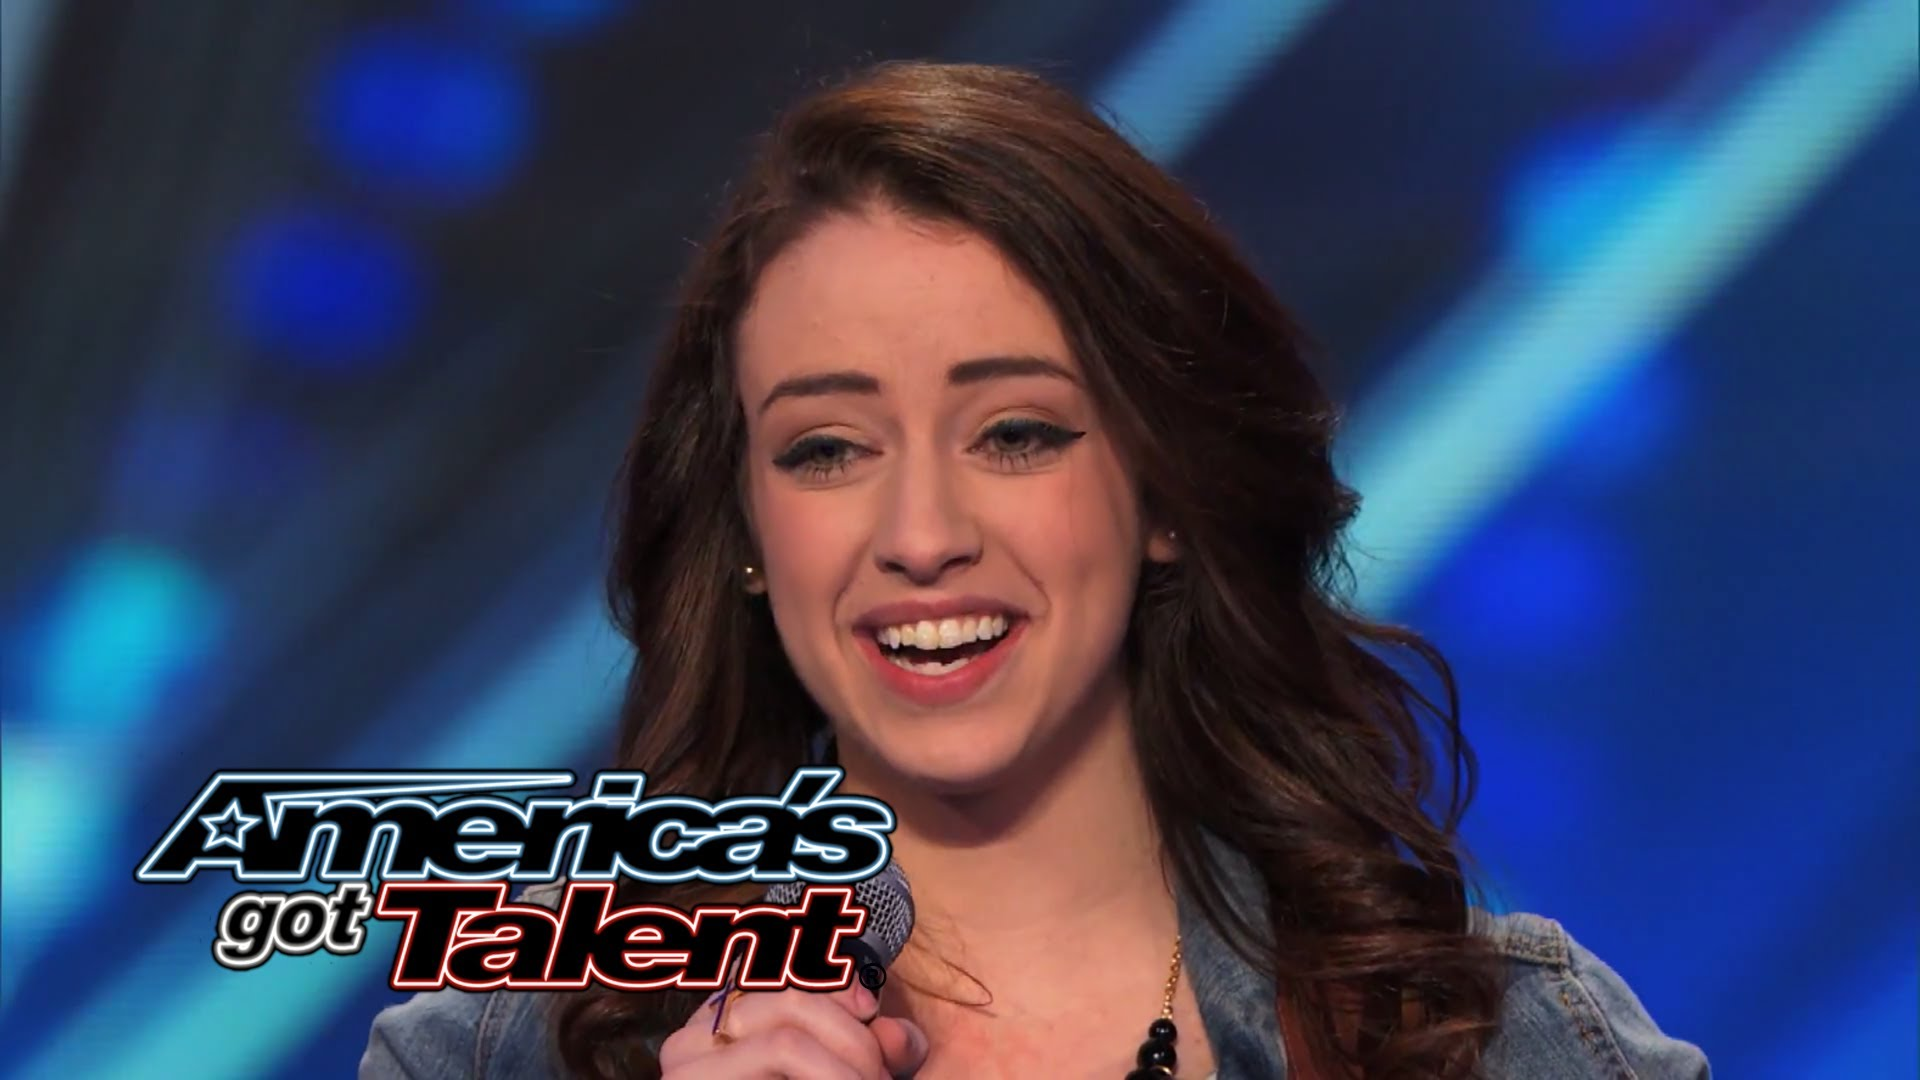 Suffering from anxiety and depression disorder, Anna stunned everyone at America's Got Talent